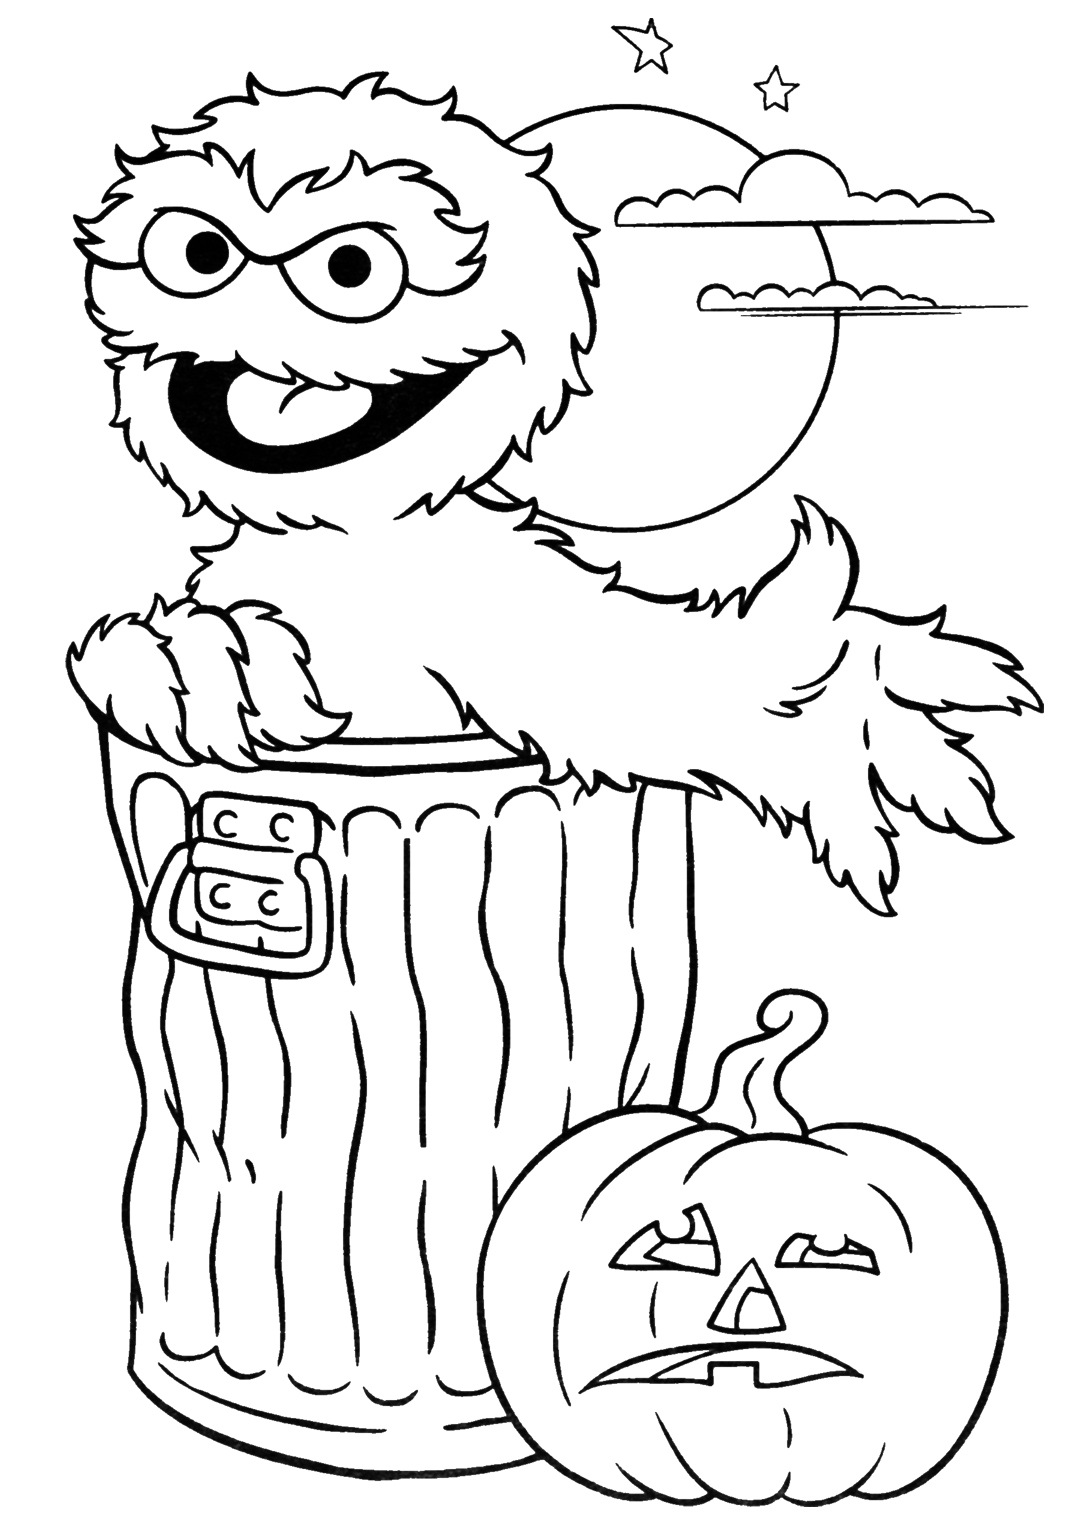 kids printable coloring pages halloween - photo#20